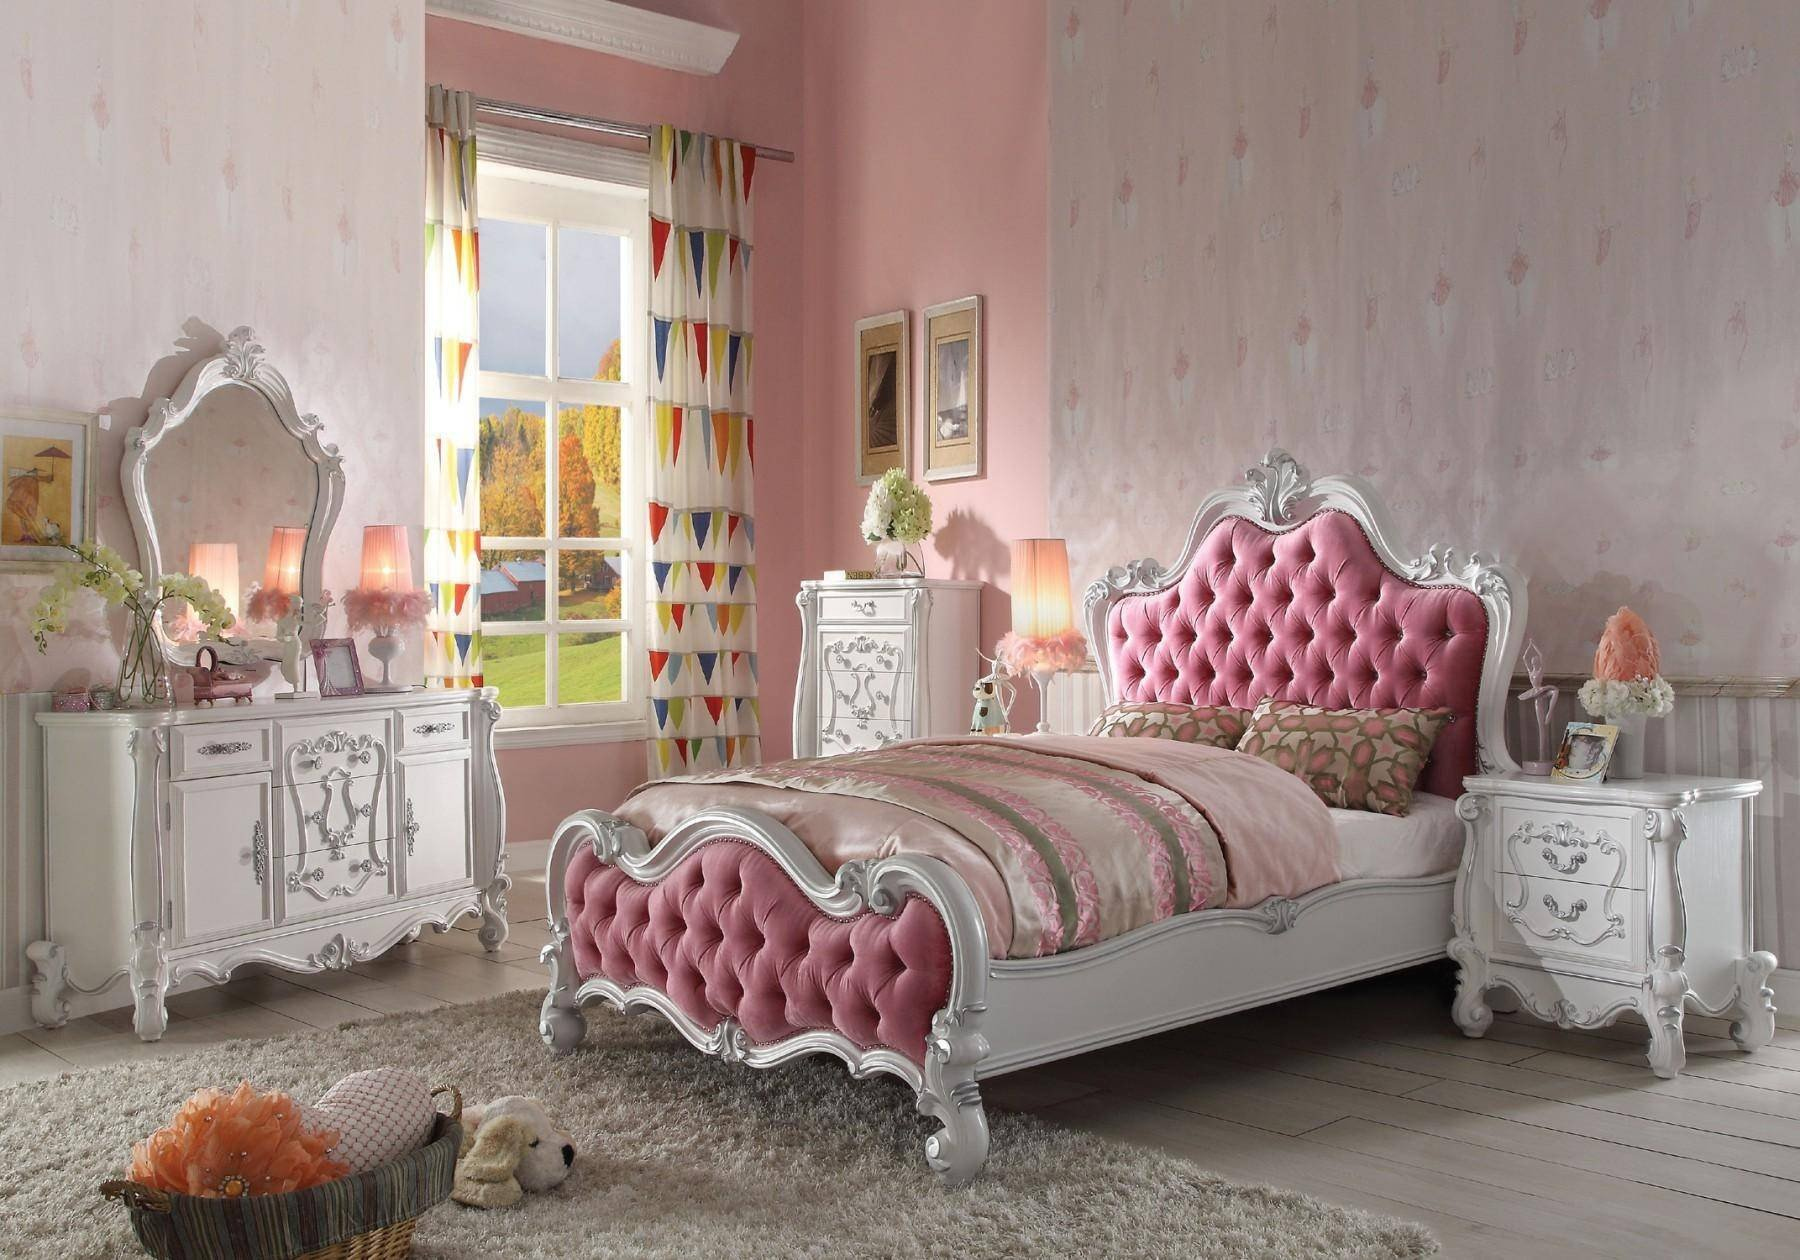 Kids Full Bedroom Set Inspirational soflex Classic andria Kids Queen Bedroom Set 4pcs Antique